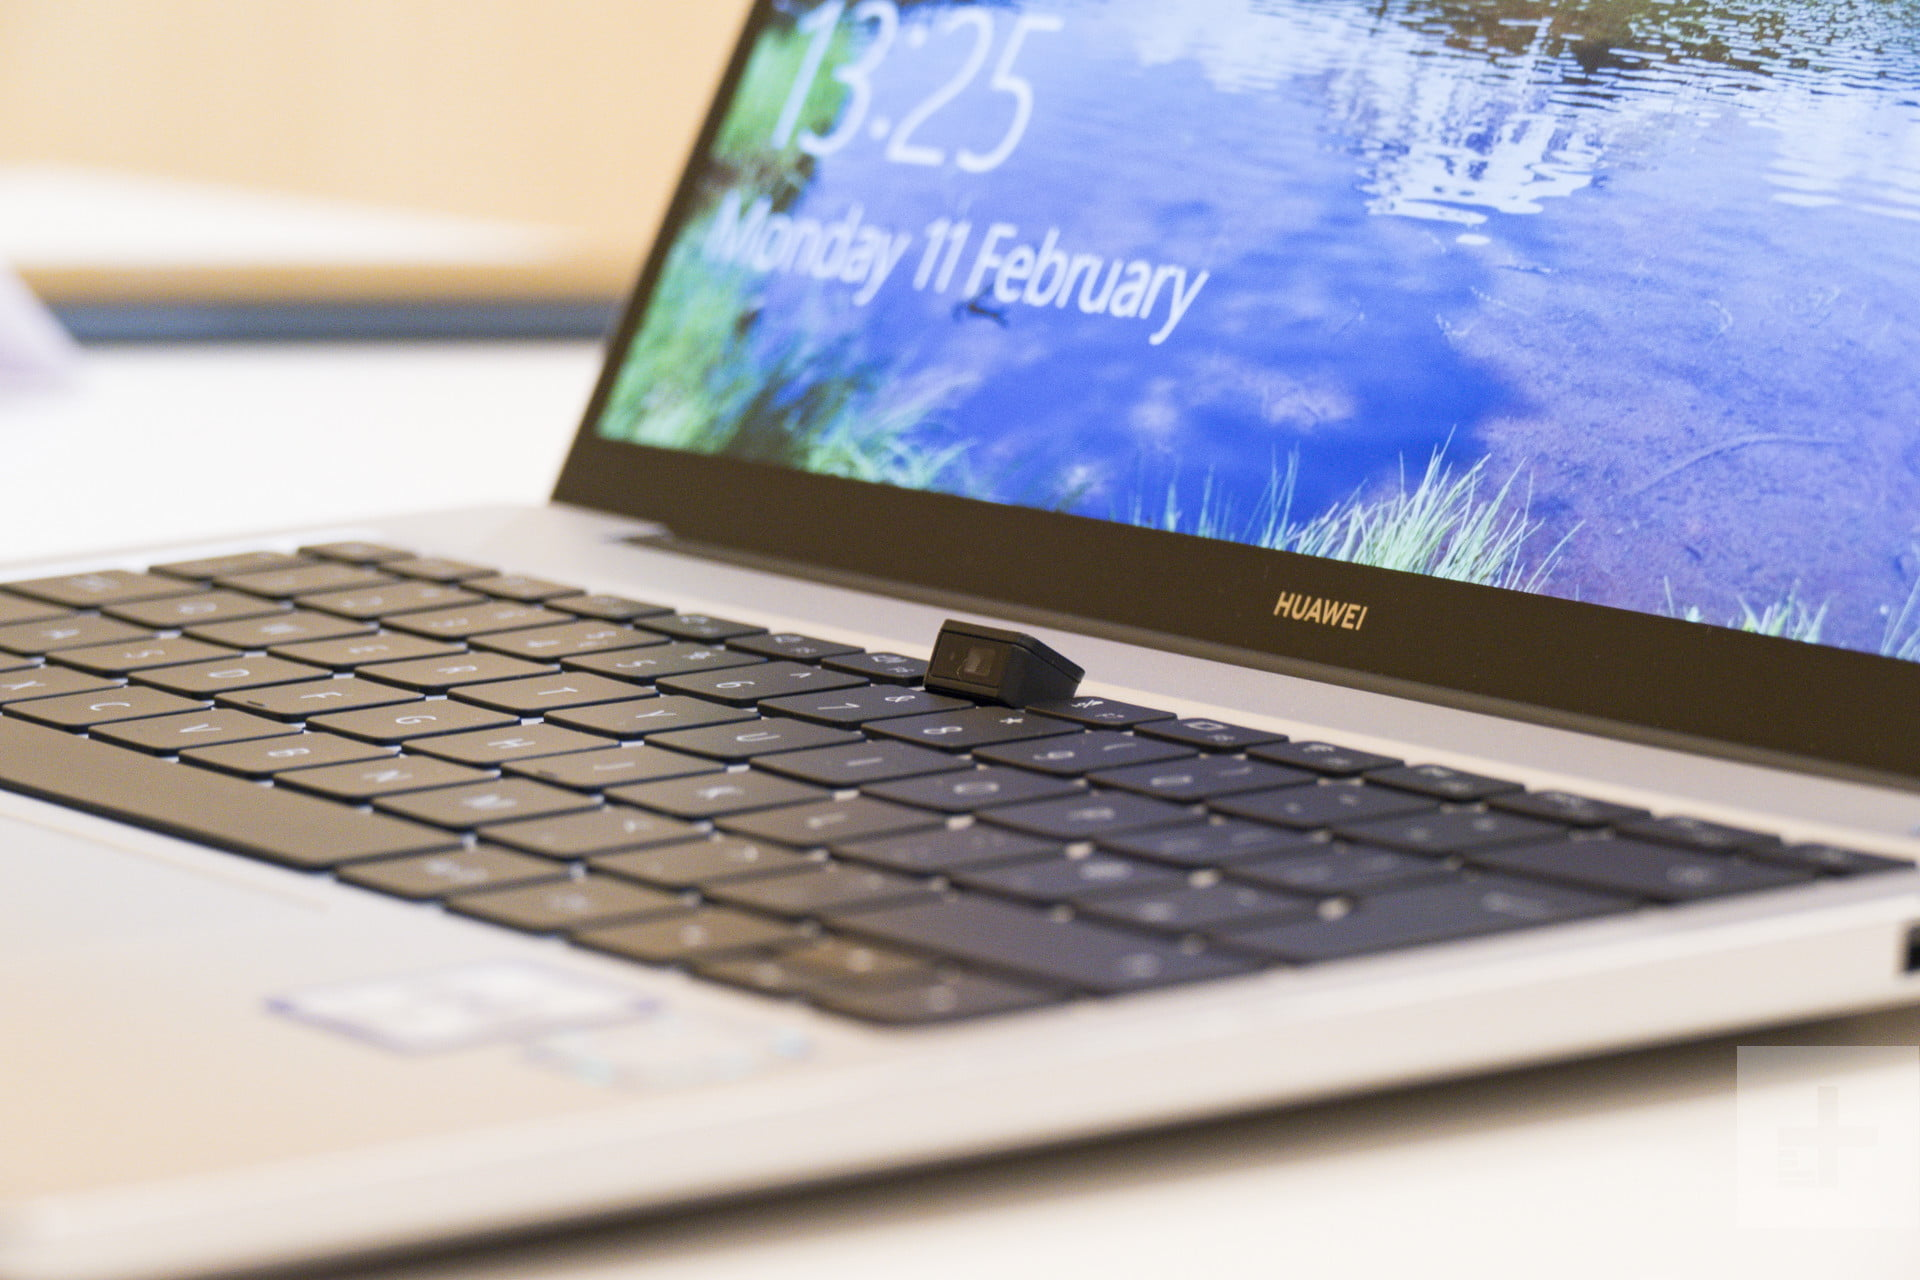 Huawei MateBook 14 Hands-On Review: The X Pro's Little